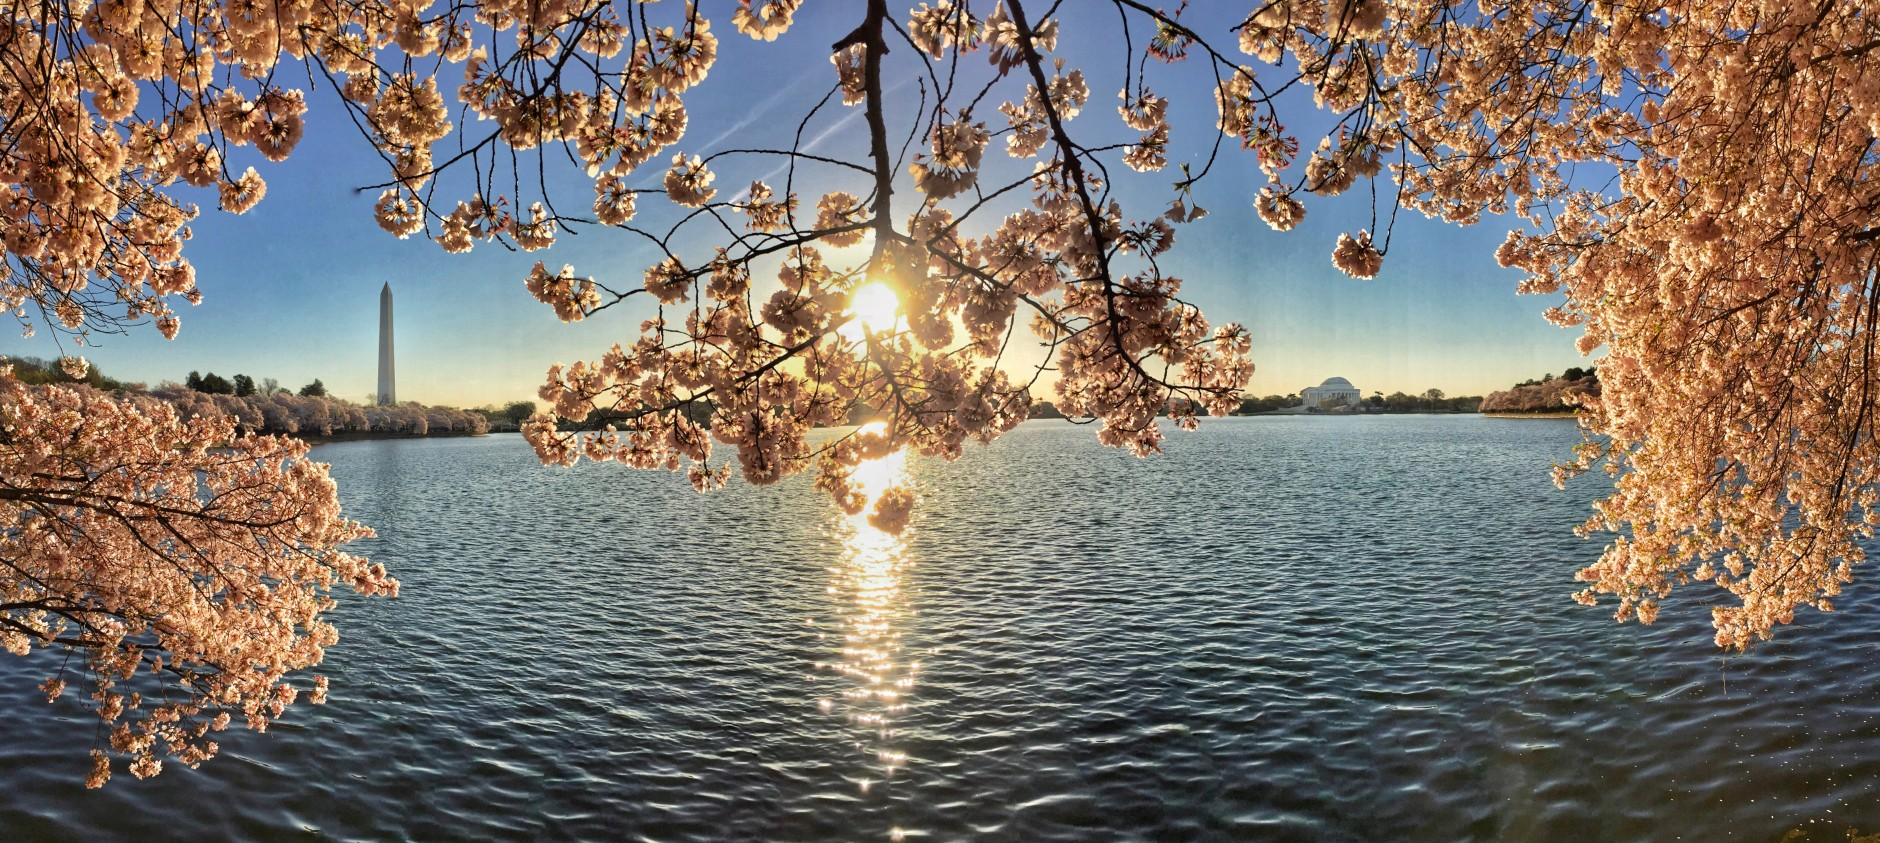 Sunrise over Cherry Blossoms at the Tidal Basin. (Sent via WTOP app by WTOP user)